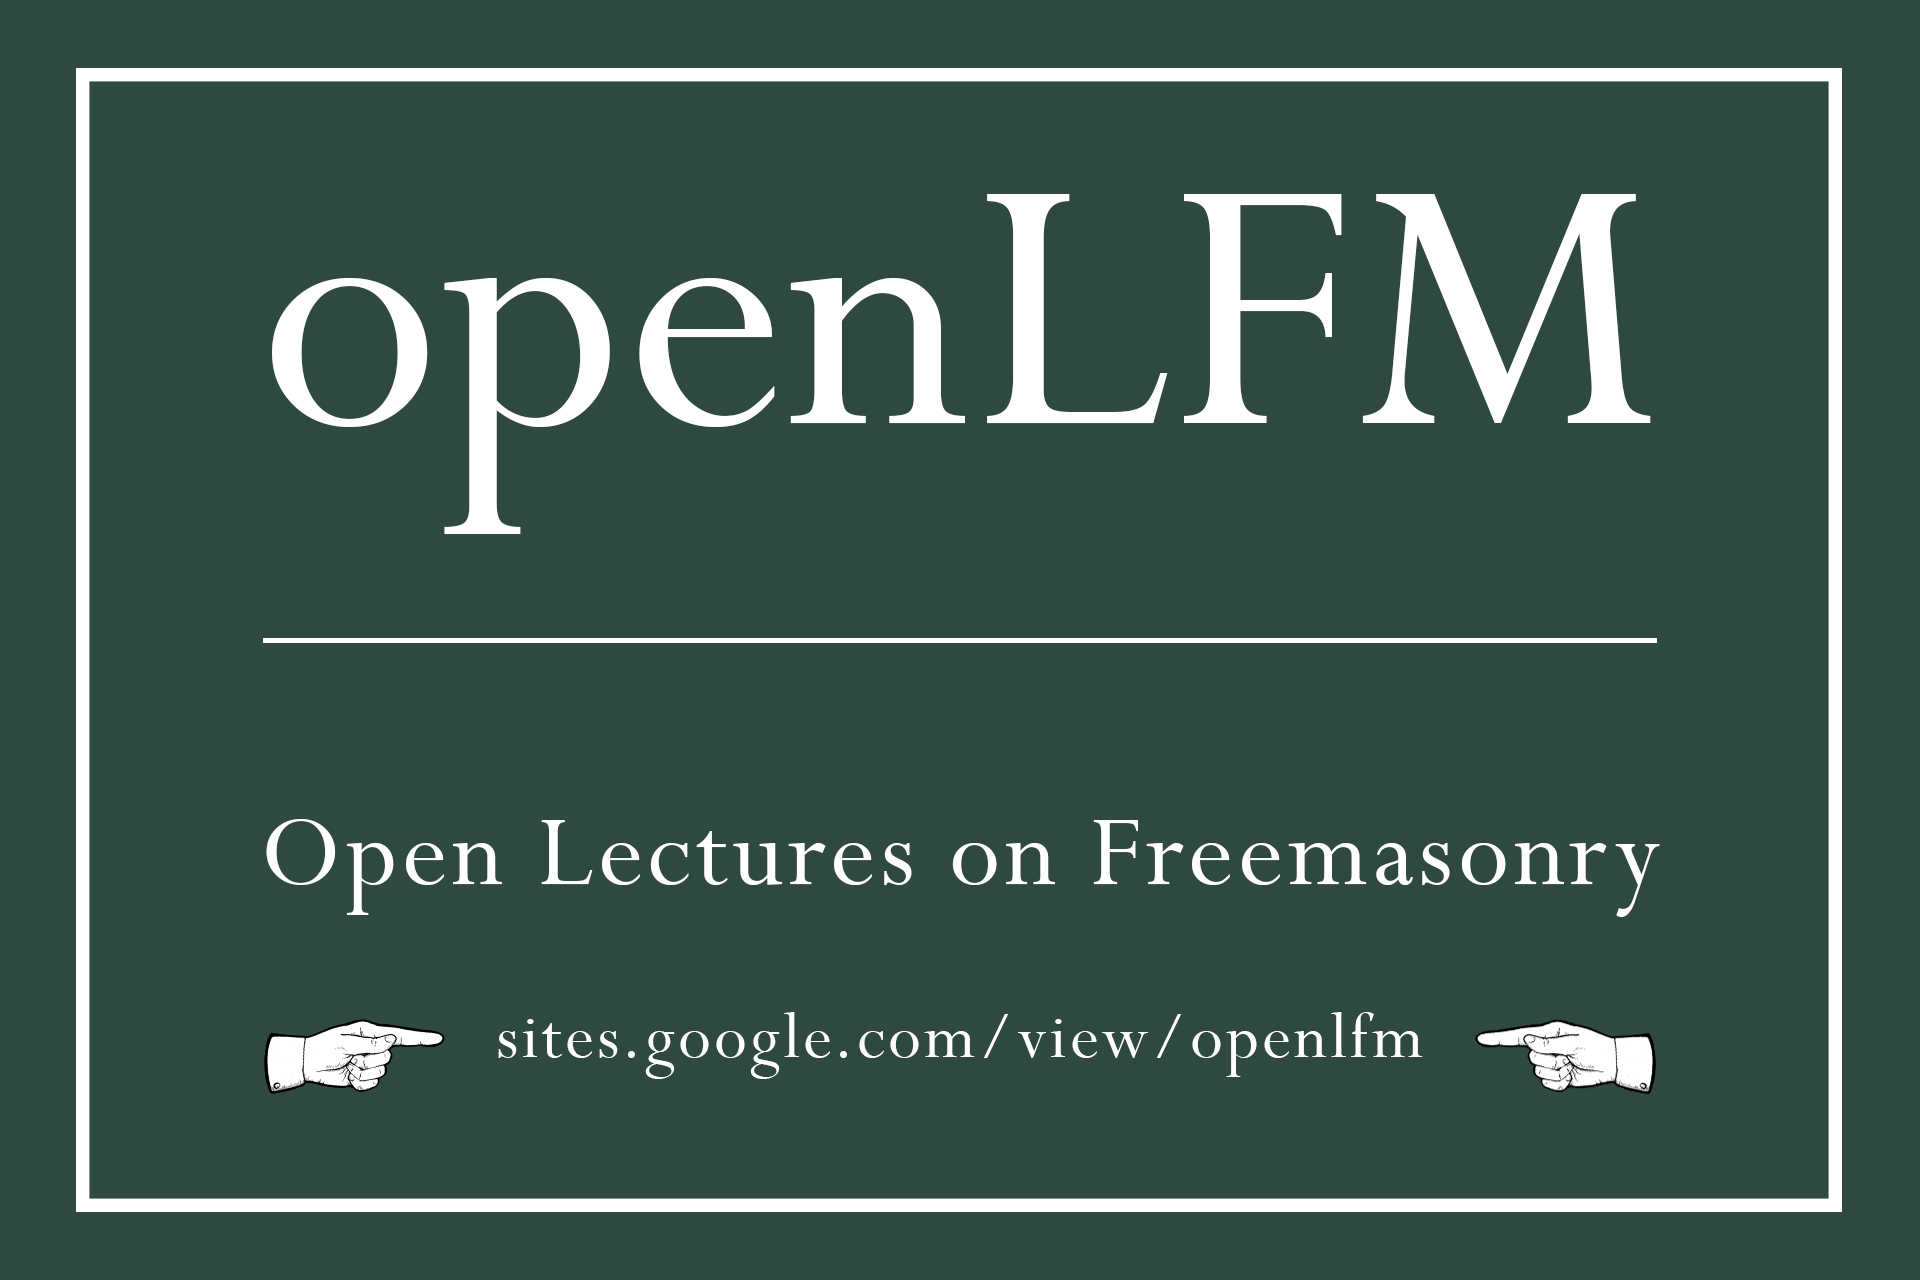 openlfm-google-sites-logo